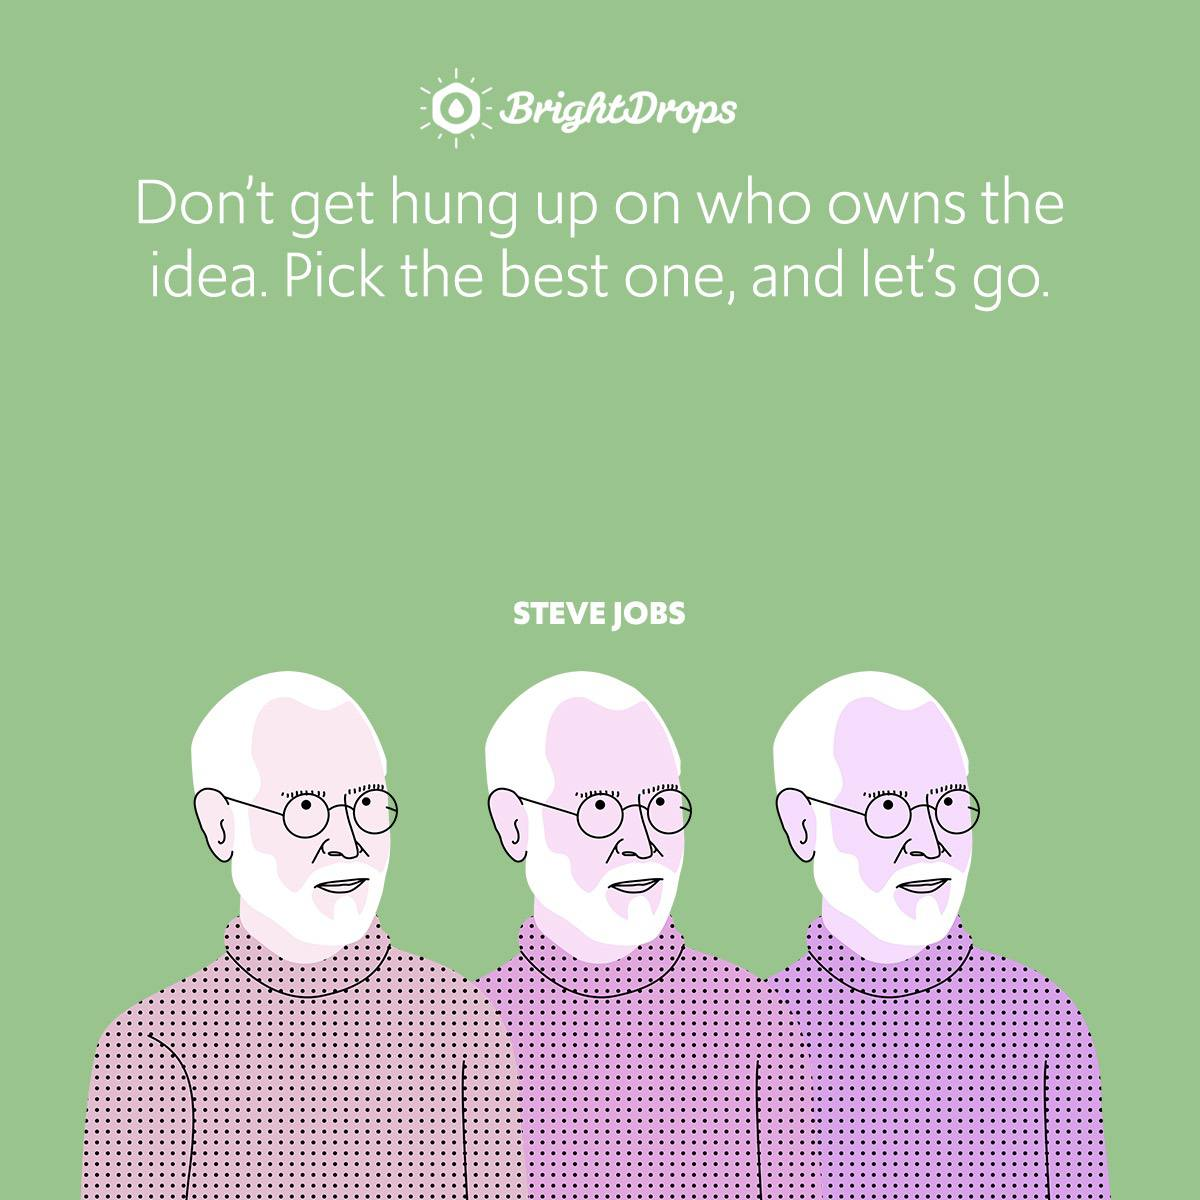 Don't get hung up on who owns the idea. Pick the best one, and let's go.